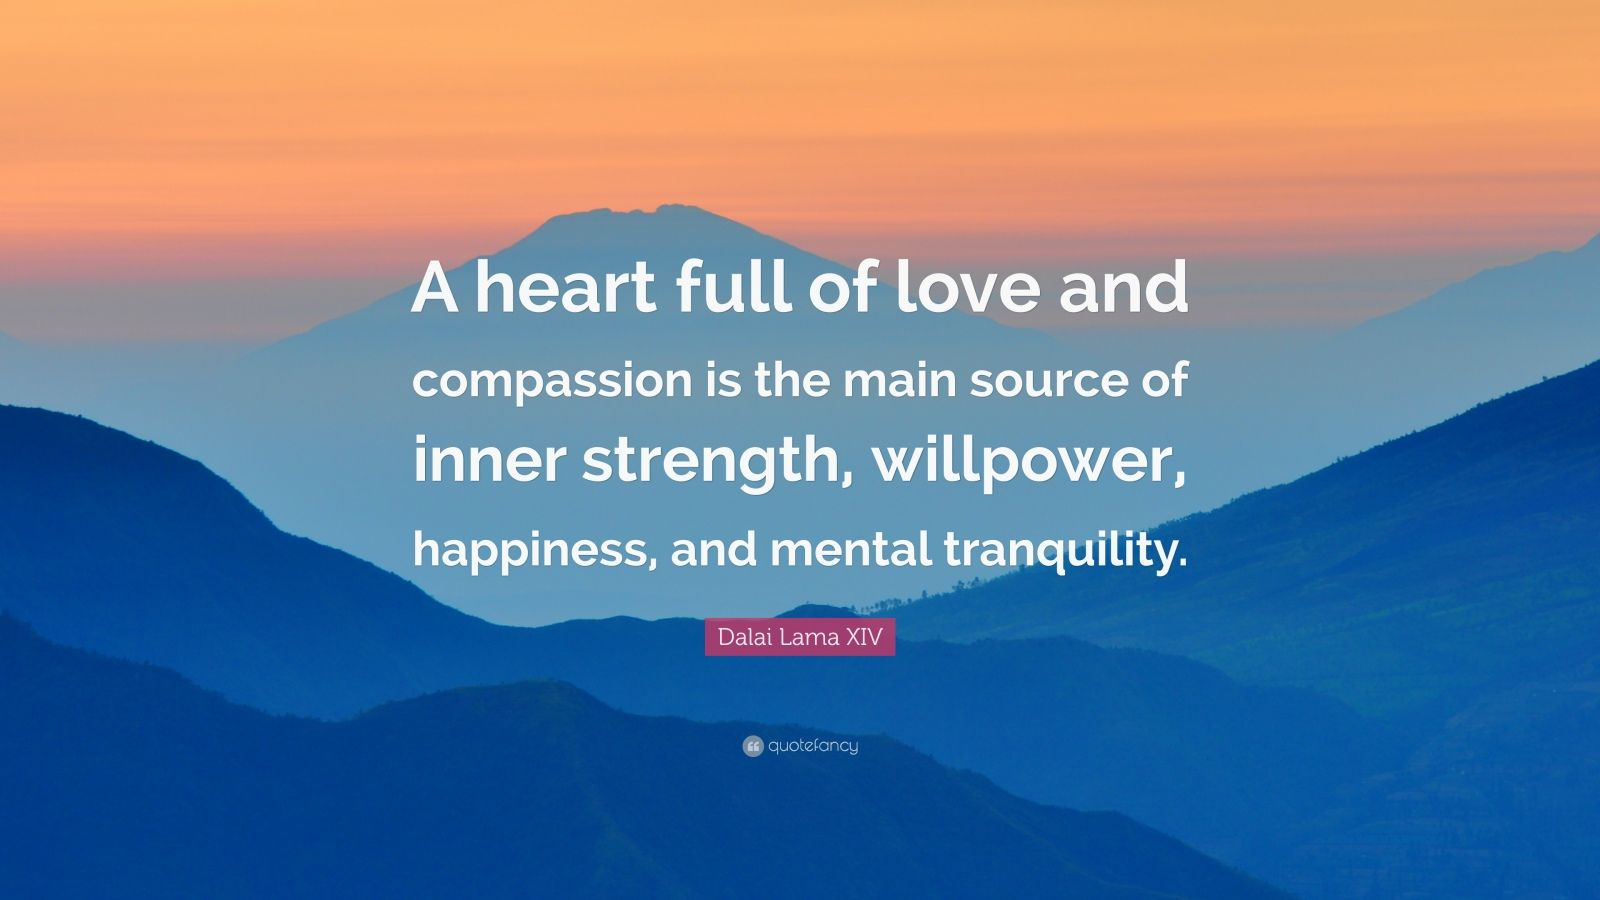 """Dalai Lama XIV Quote: """"A heart full of love and compassion is the main source of inner strength, willpower, happiness, and mental tranquility."""""""